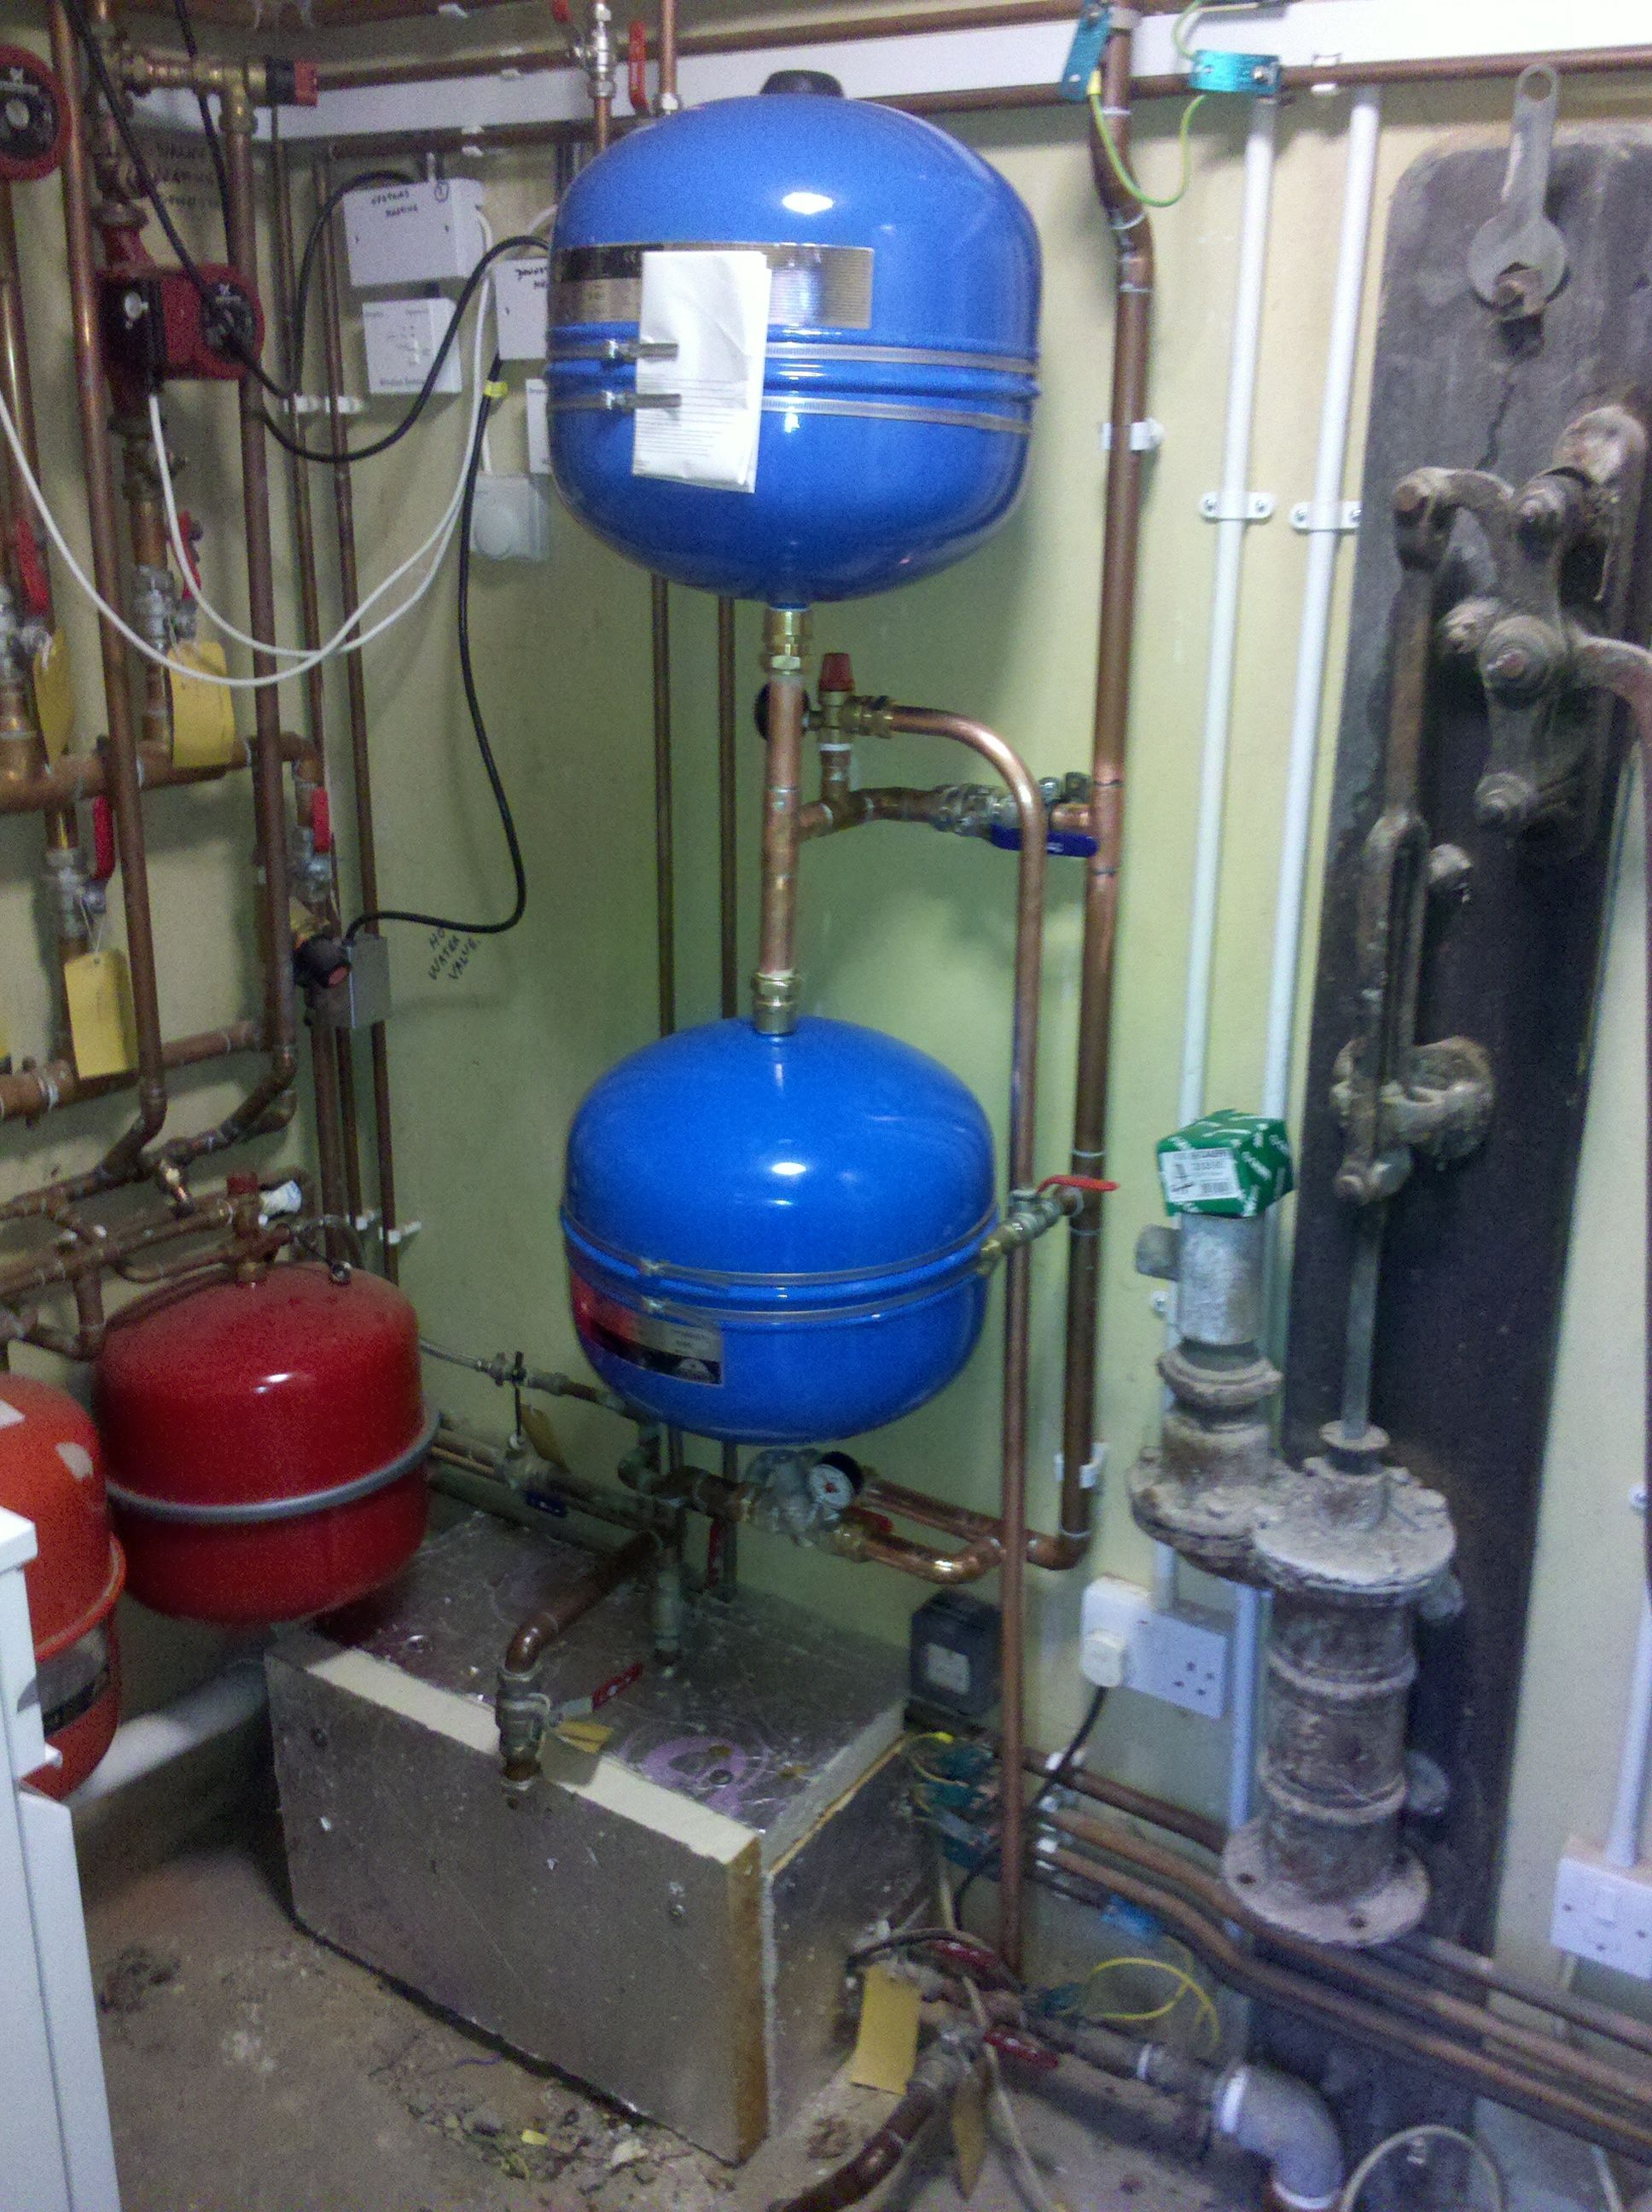 2 Pressure Vessels Regulating The Water Supply From A Bore Hole Pump Room With Plants Water Supply Bore Hole